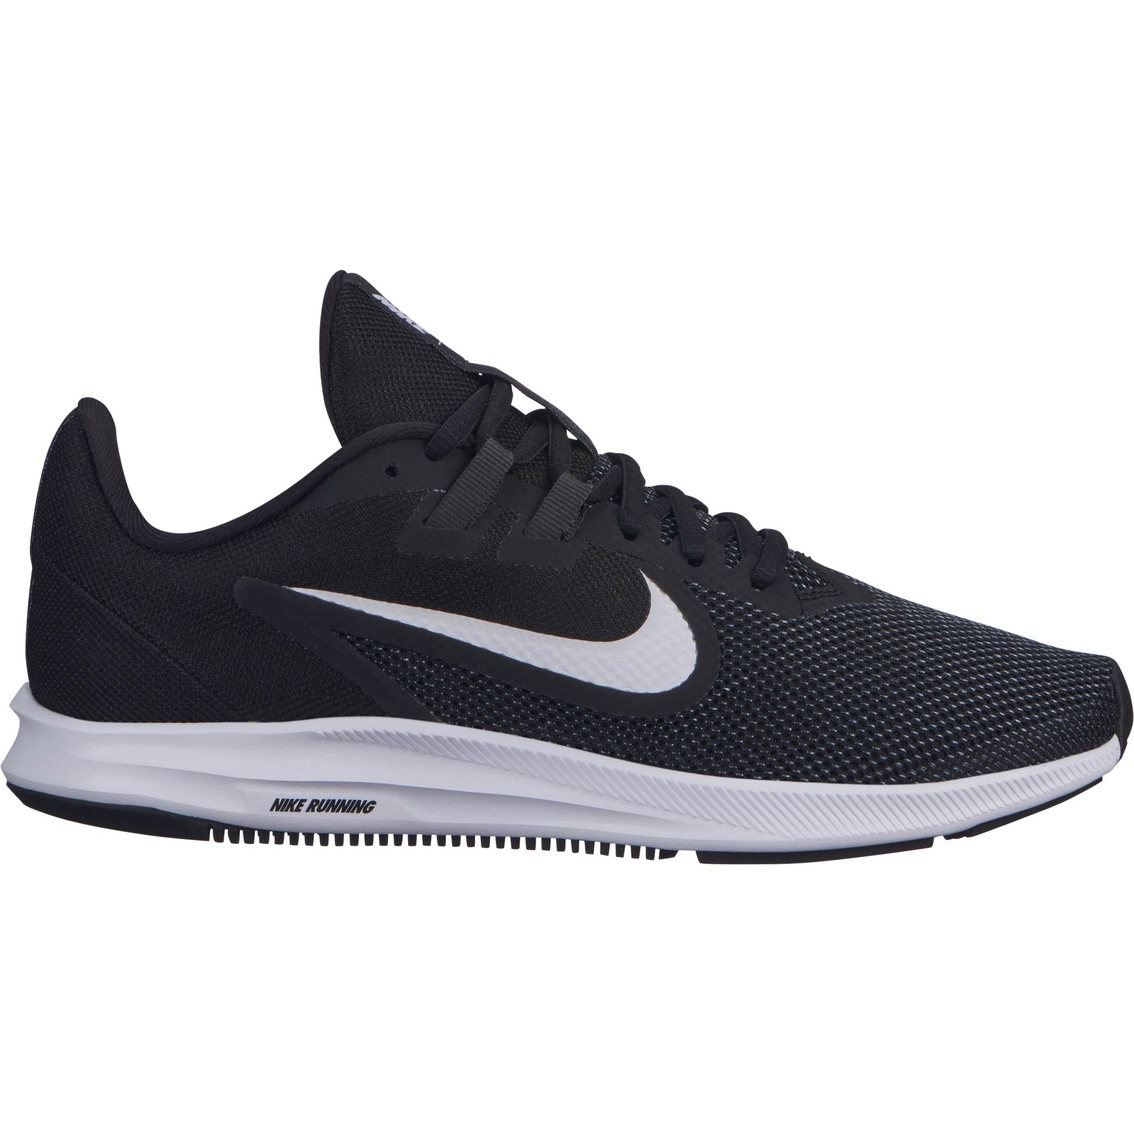 lealtad Orgullo pesadilla  Nike Women's Downshifter 9 Running Shoes | Running | Shoes | Shop The  Exchange